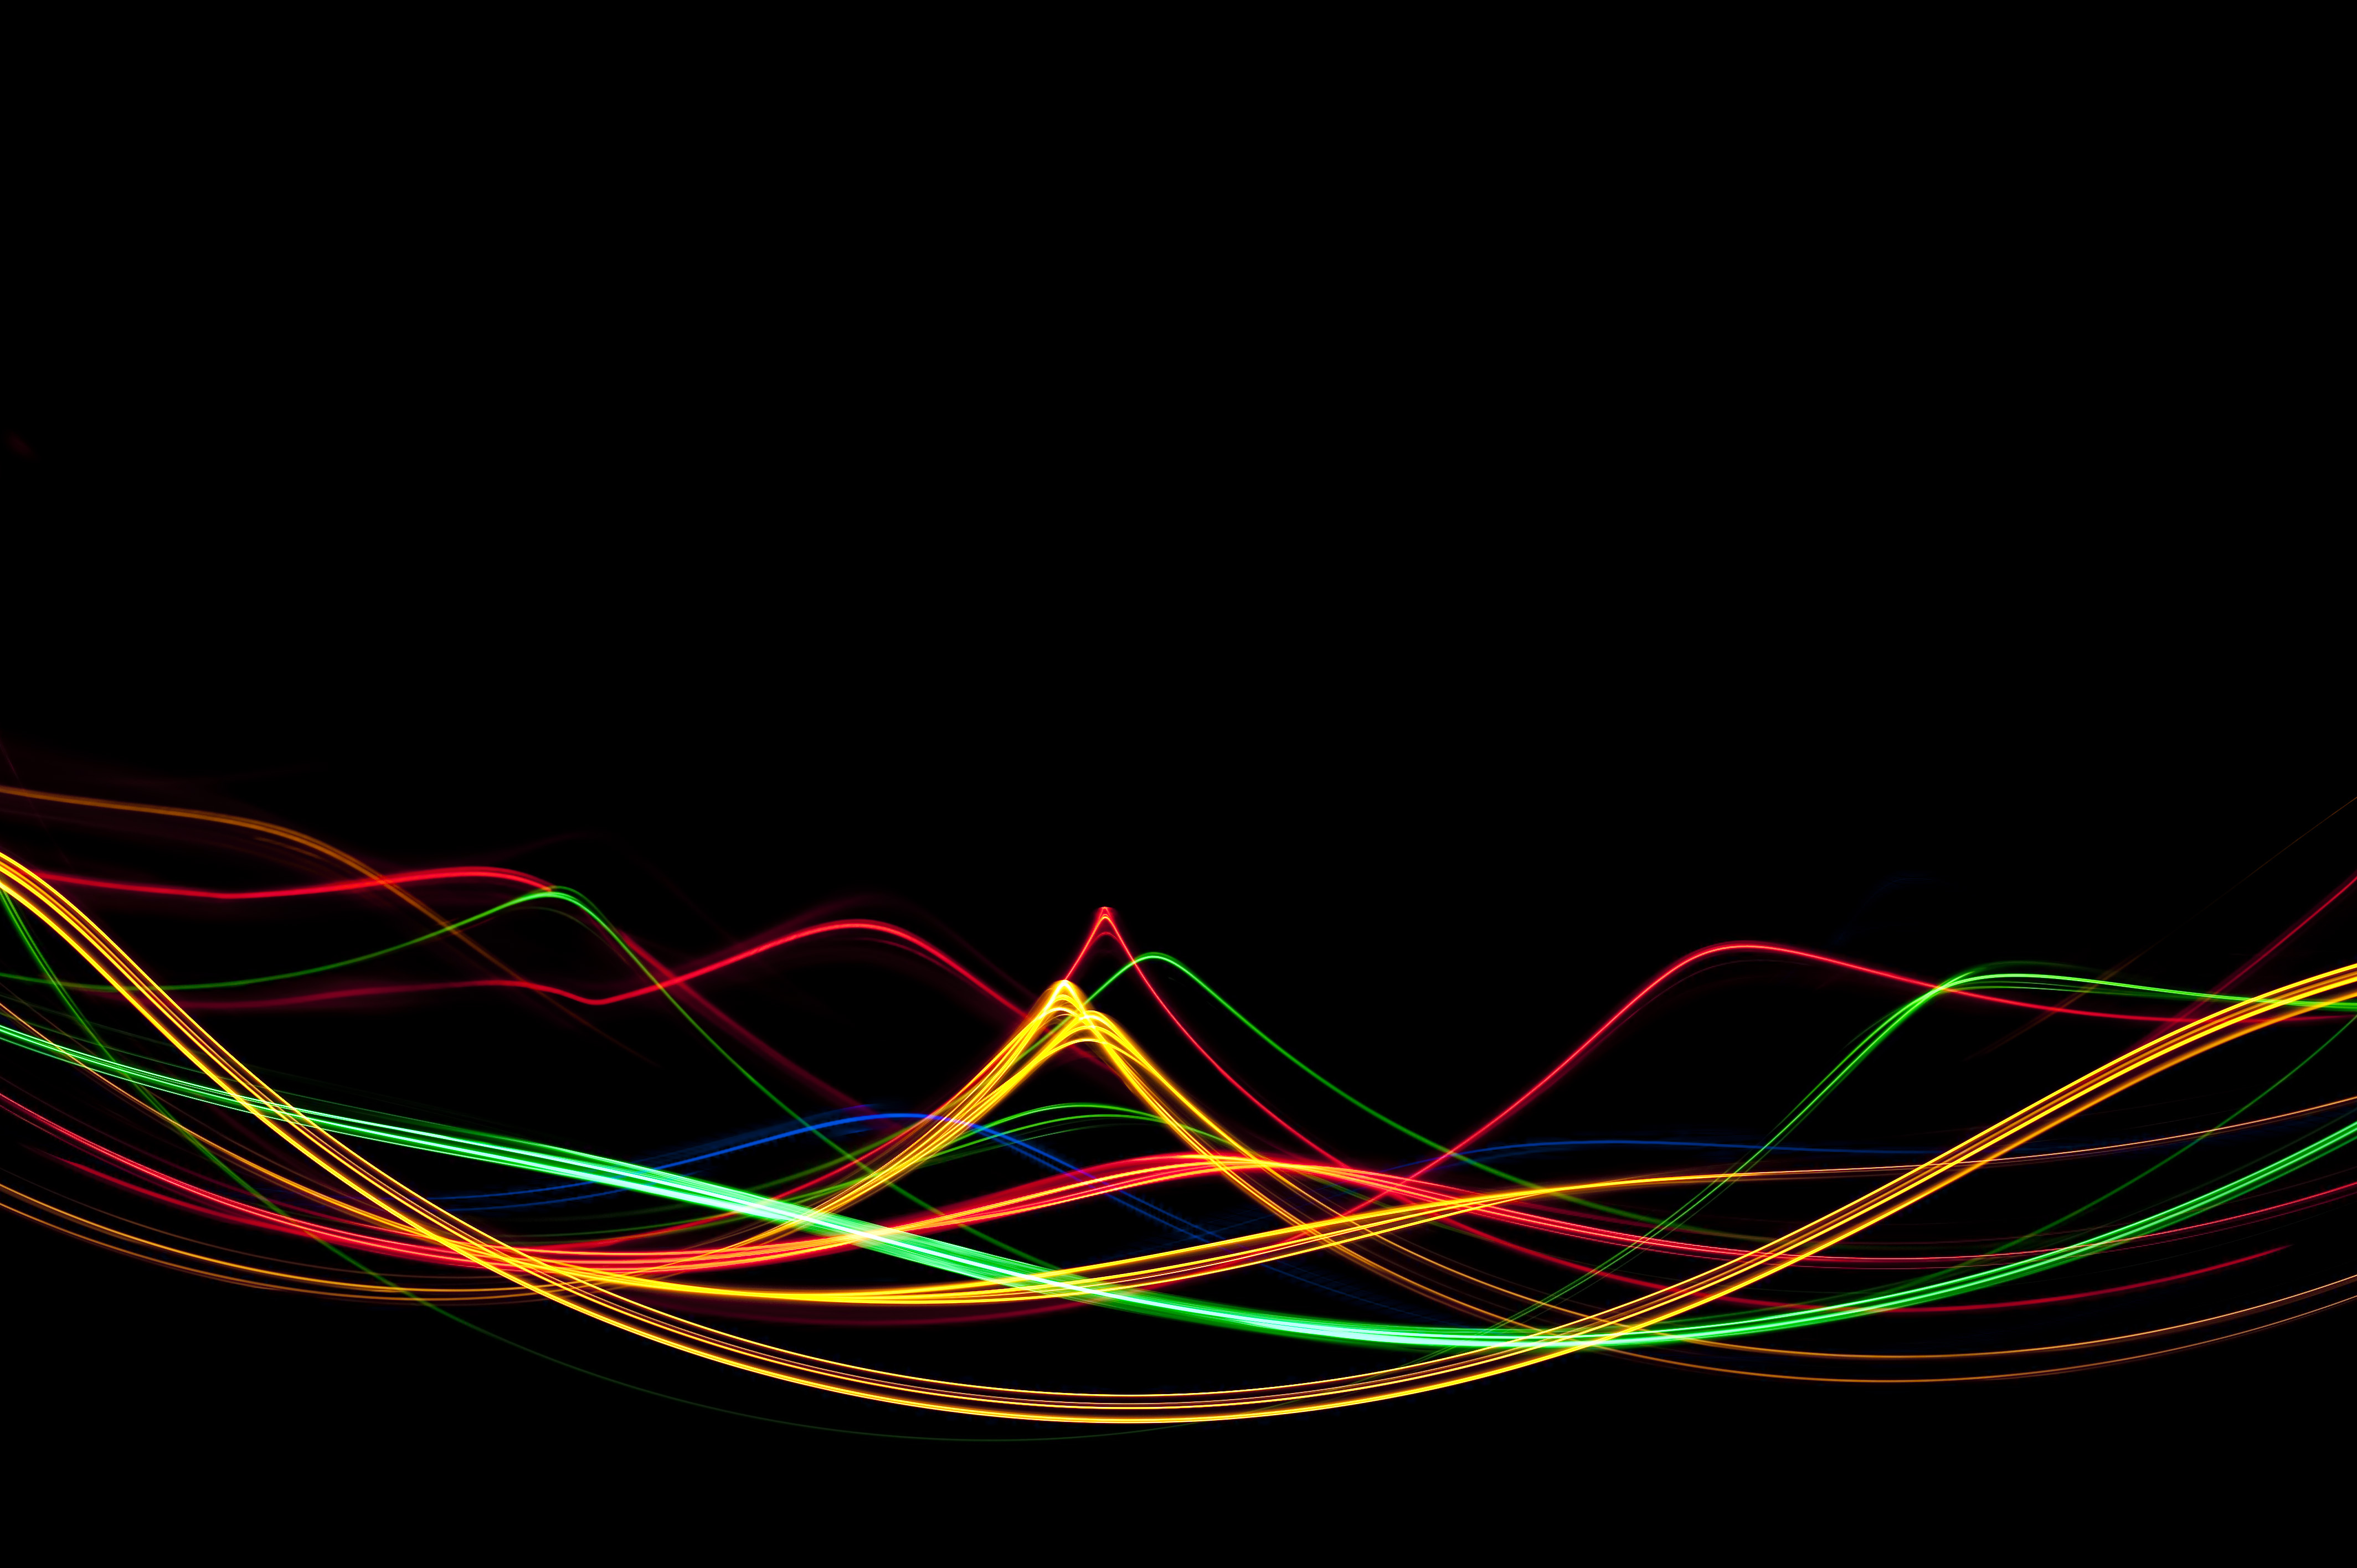 k abstract looped backgrounds with luminous particles with depth of